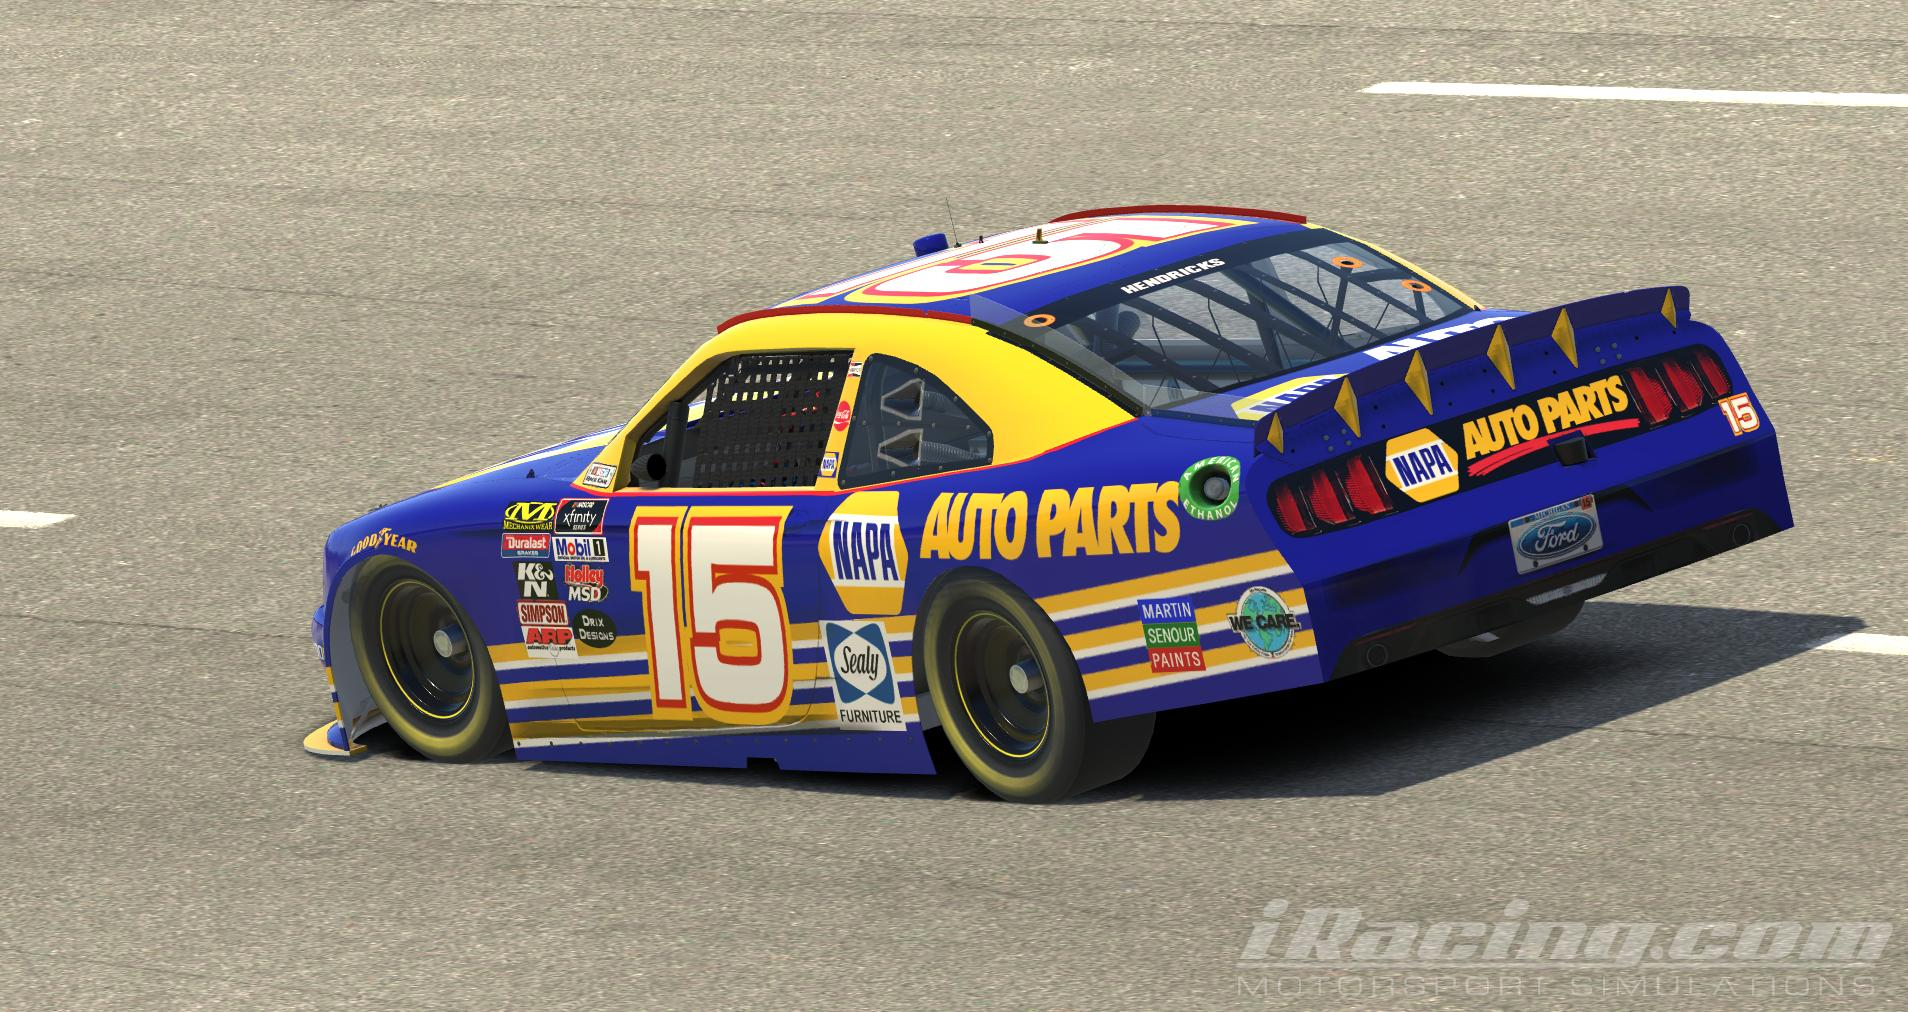 Xfinity Mustang Michael Waltrip 2001 Napa Paint Scheme by Davie